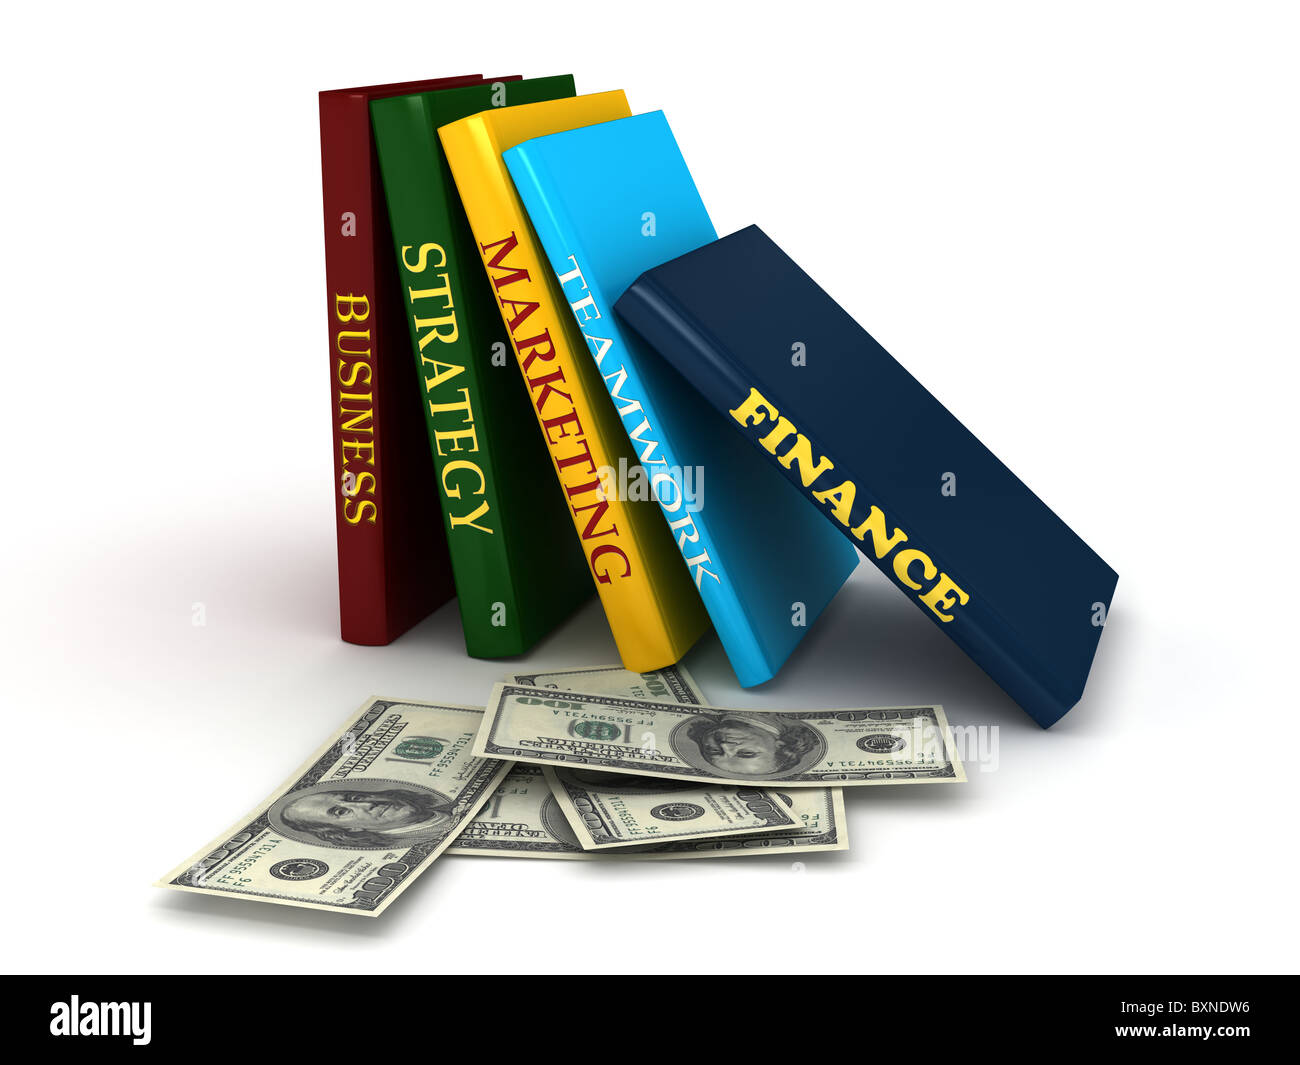 Business book with money - Stock Image